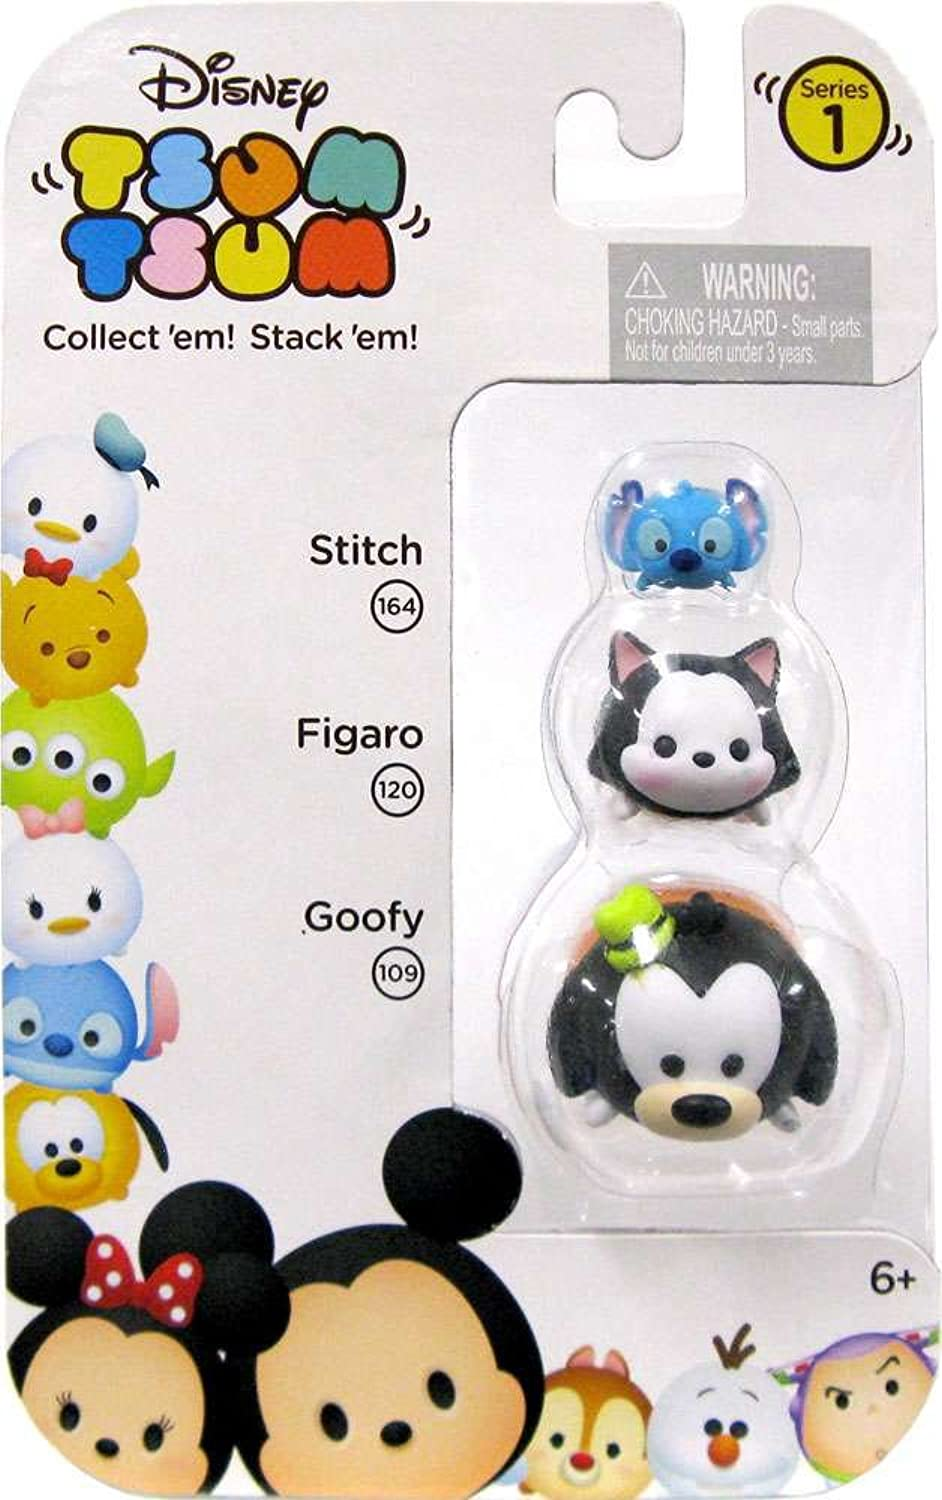 Disney Tsum Tsum 3 Pack Figures 1 Stitch, and Goofy Series